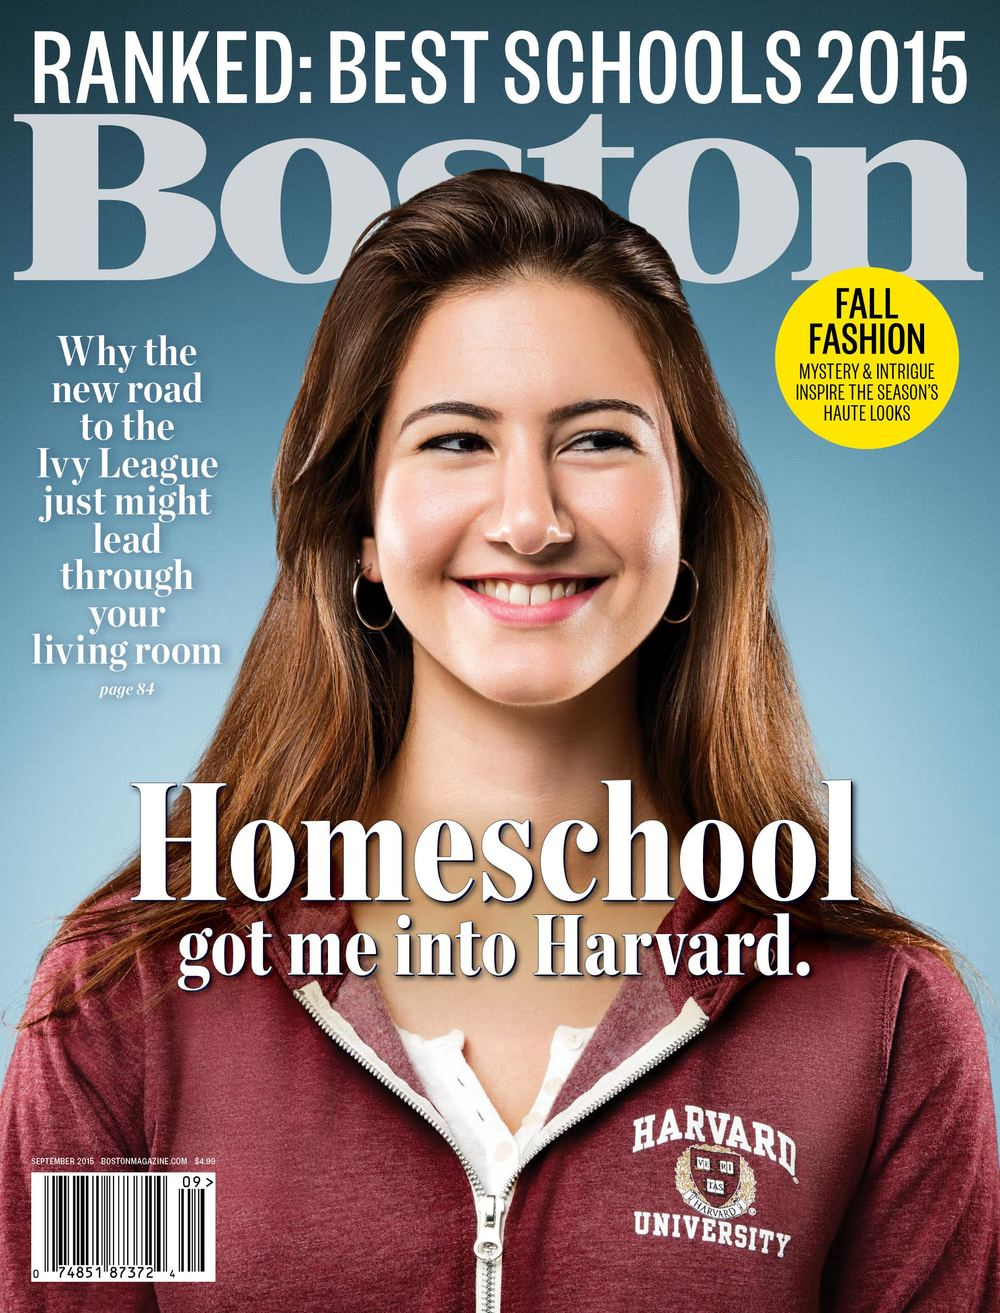 I got to shoot the cover story about homeschooling in August for the Schools issue of Boston Magazine. The subjects they chose were amazing and it was one of my favorite job of the year. Check out the article HERE and a gallery of outtakes HERE. Thanks to Eric and Toan for the job, and Zach Vitale for the retouching.